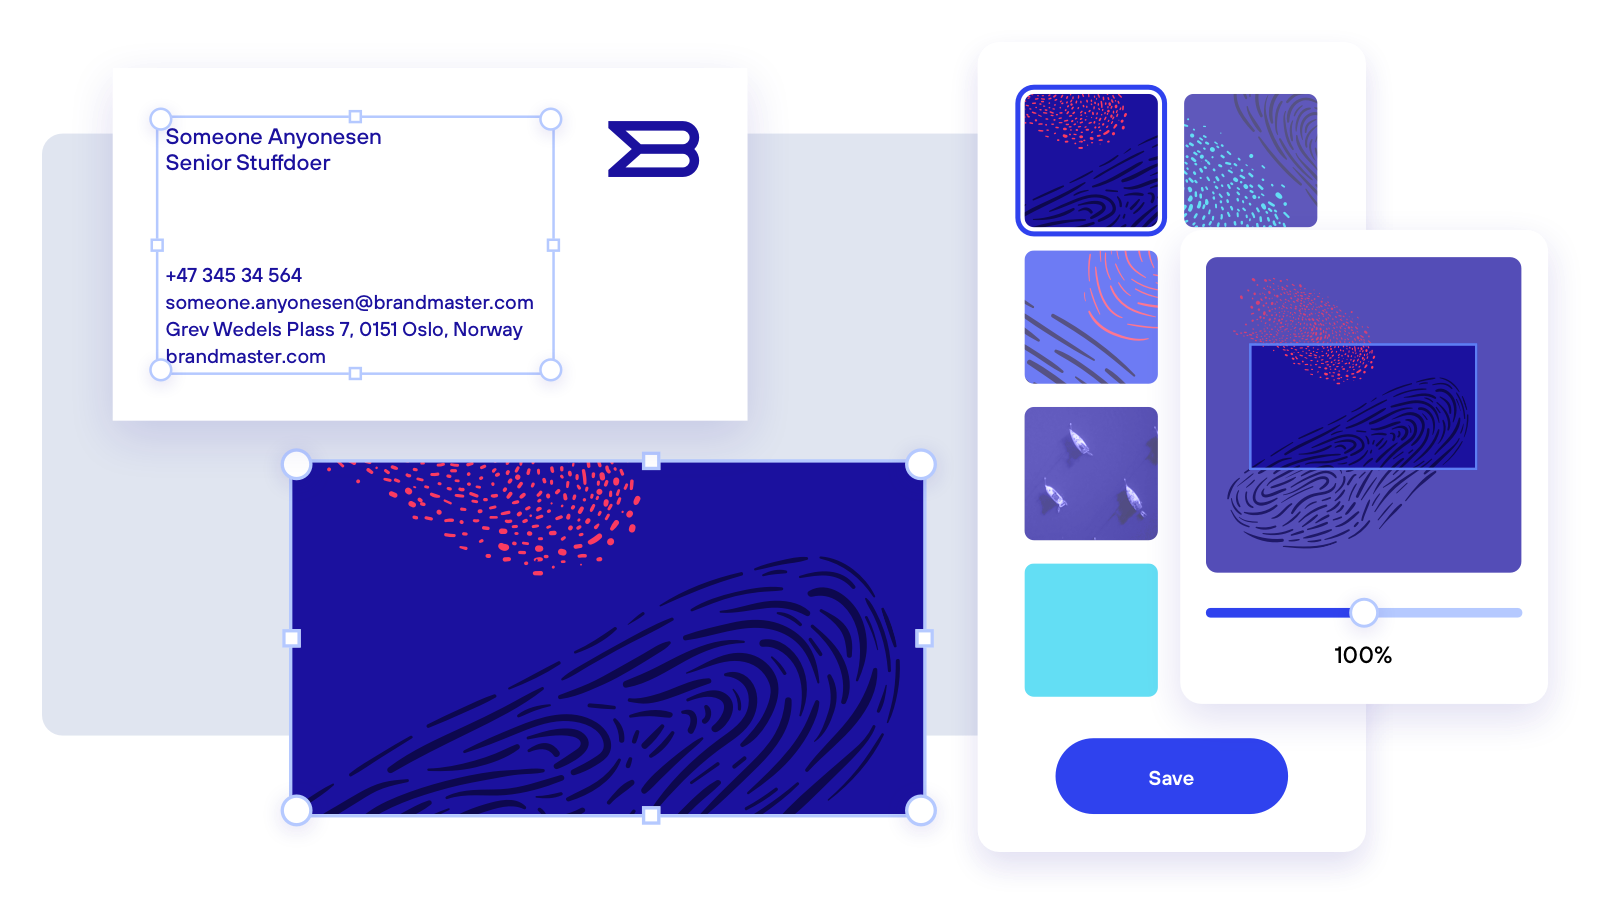 Template Studio - We can promise you greater control without adding to your workload. Pre-designed templates show everyone how it should be done and set a standard that's applied across the company.